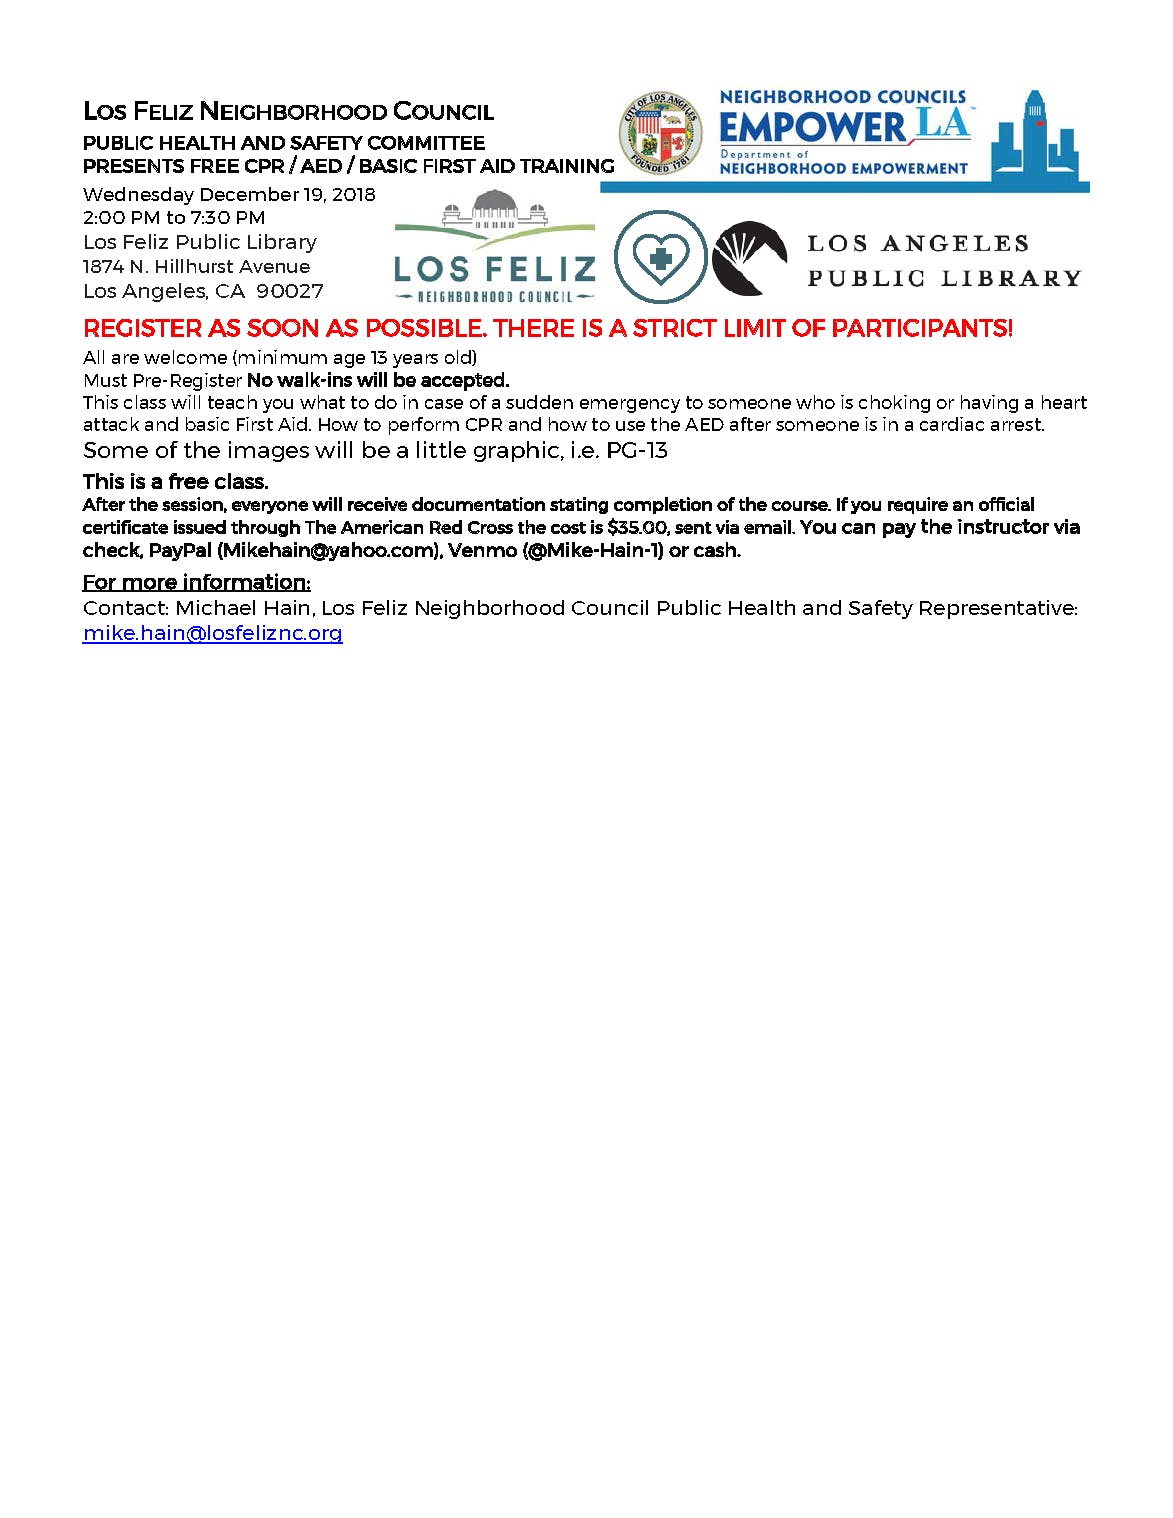 Free Cpr Class Sponsored By The Los Feliz Neighborhood Council